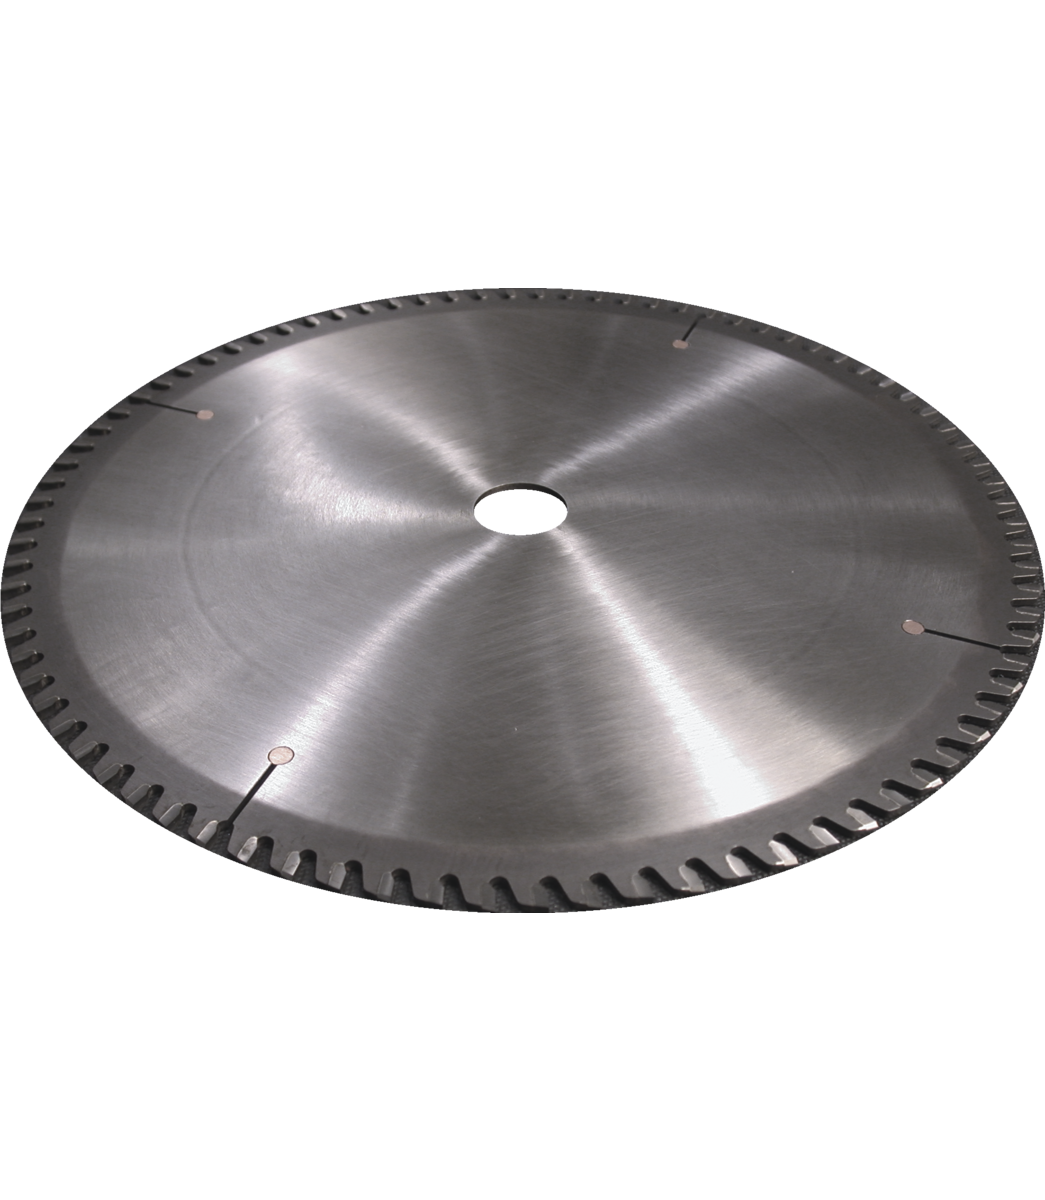 Non-Ferrous Circular Saw Blade 350mm x 32mm x 2.5mm x 180T For J-CK350-2/4K